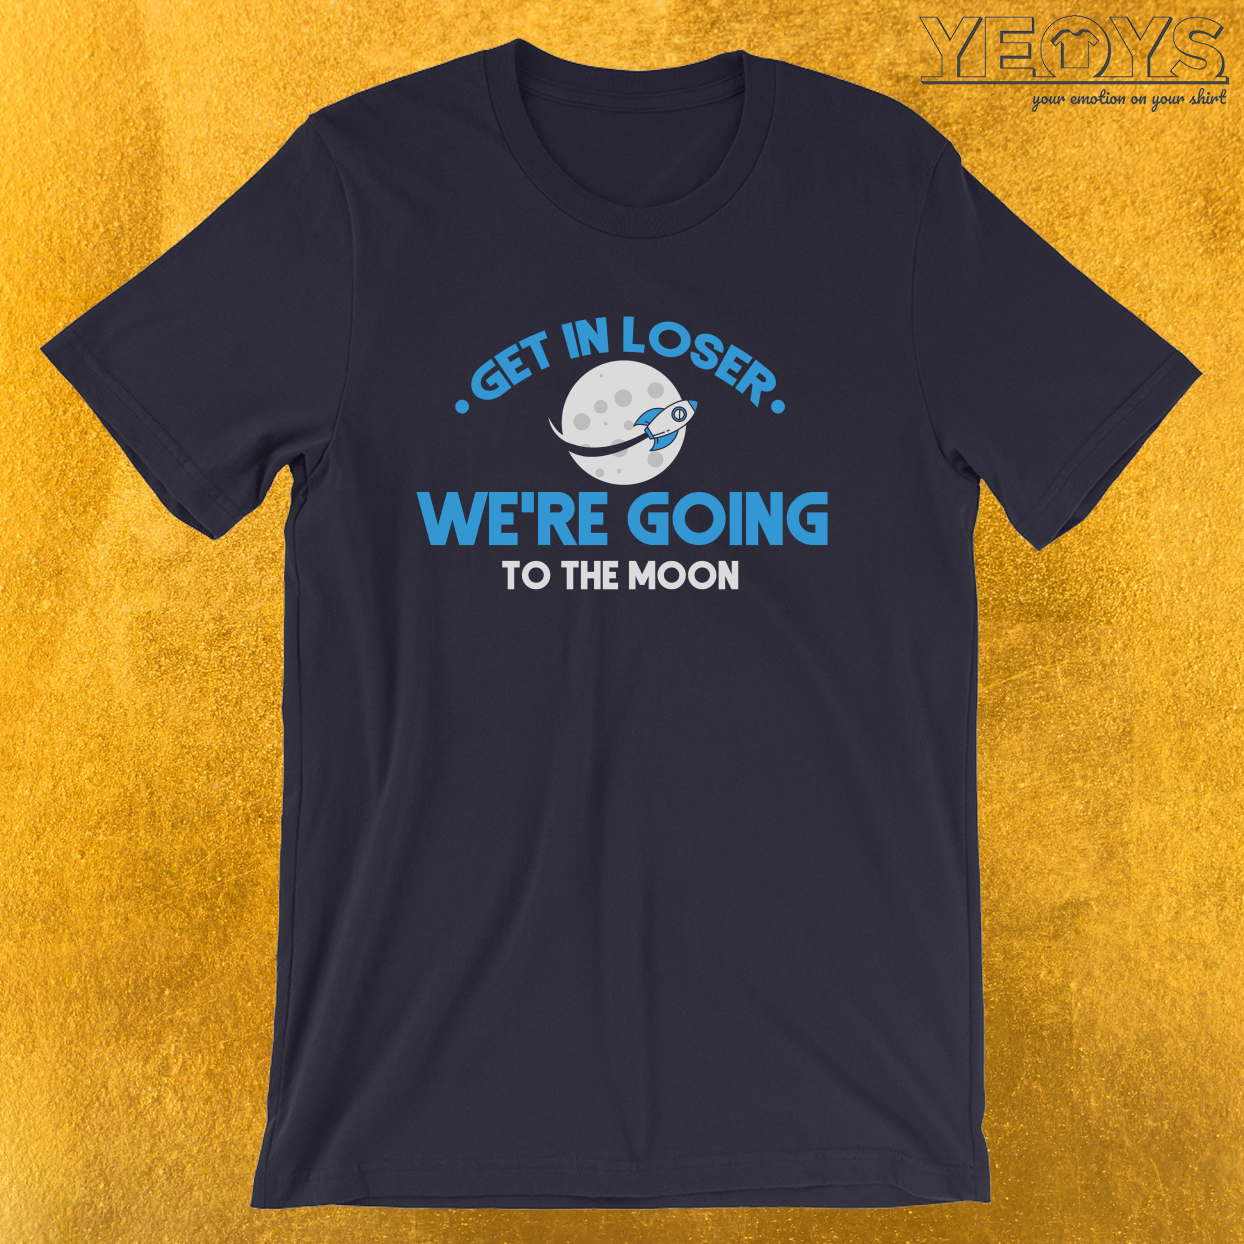 Get In Loser – Going To The Moon Tee